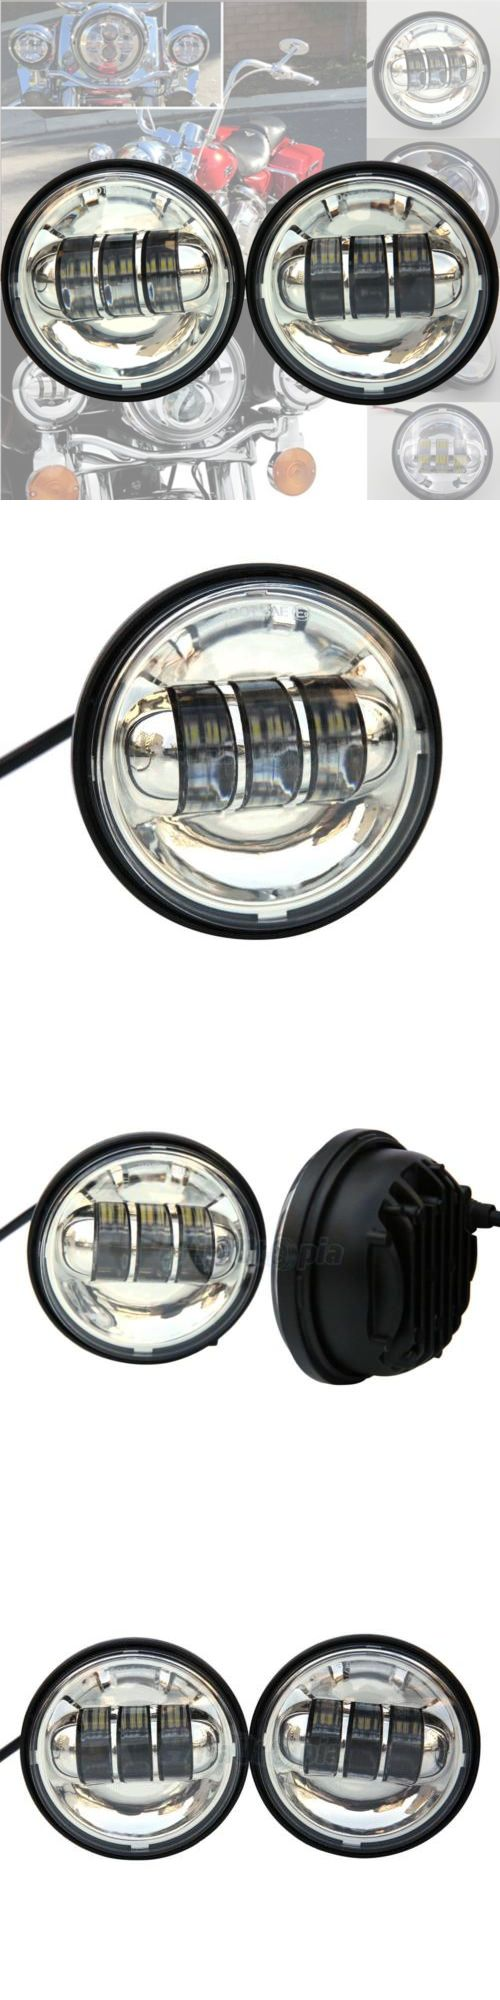 motorcycle parts: New 4.5Inch 60W Led Fog Light Passing Lamp For Harley Davidson Motorcycle Silver -> BUY IT NOW ONLY: $38.23 on eBay!